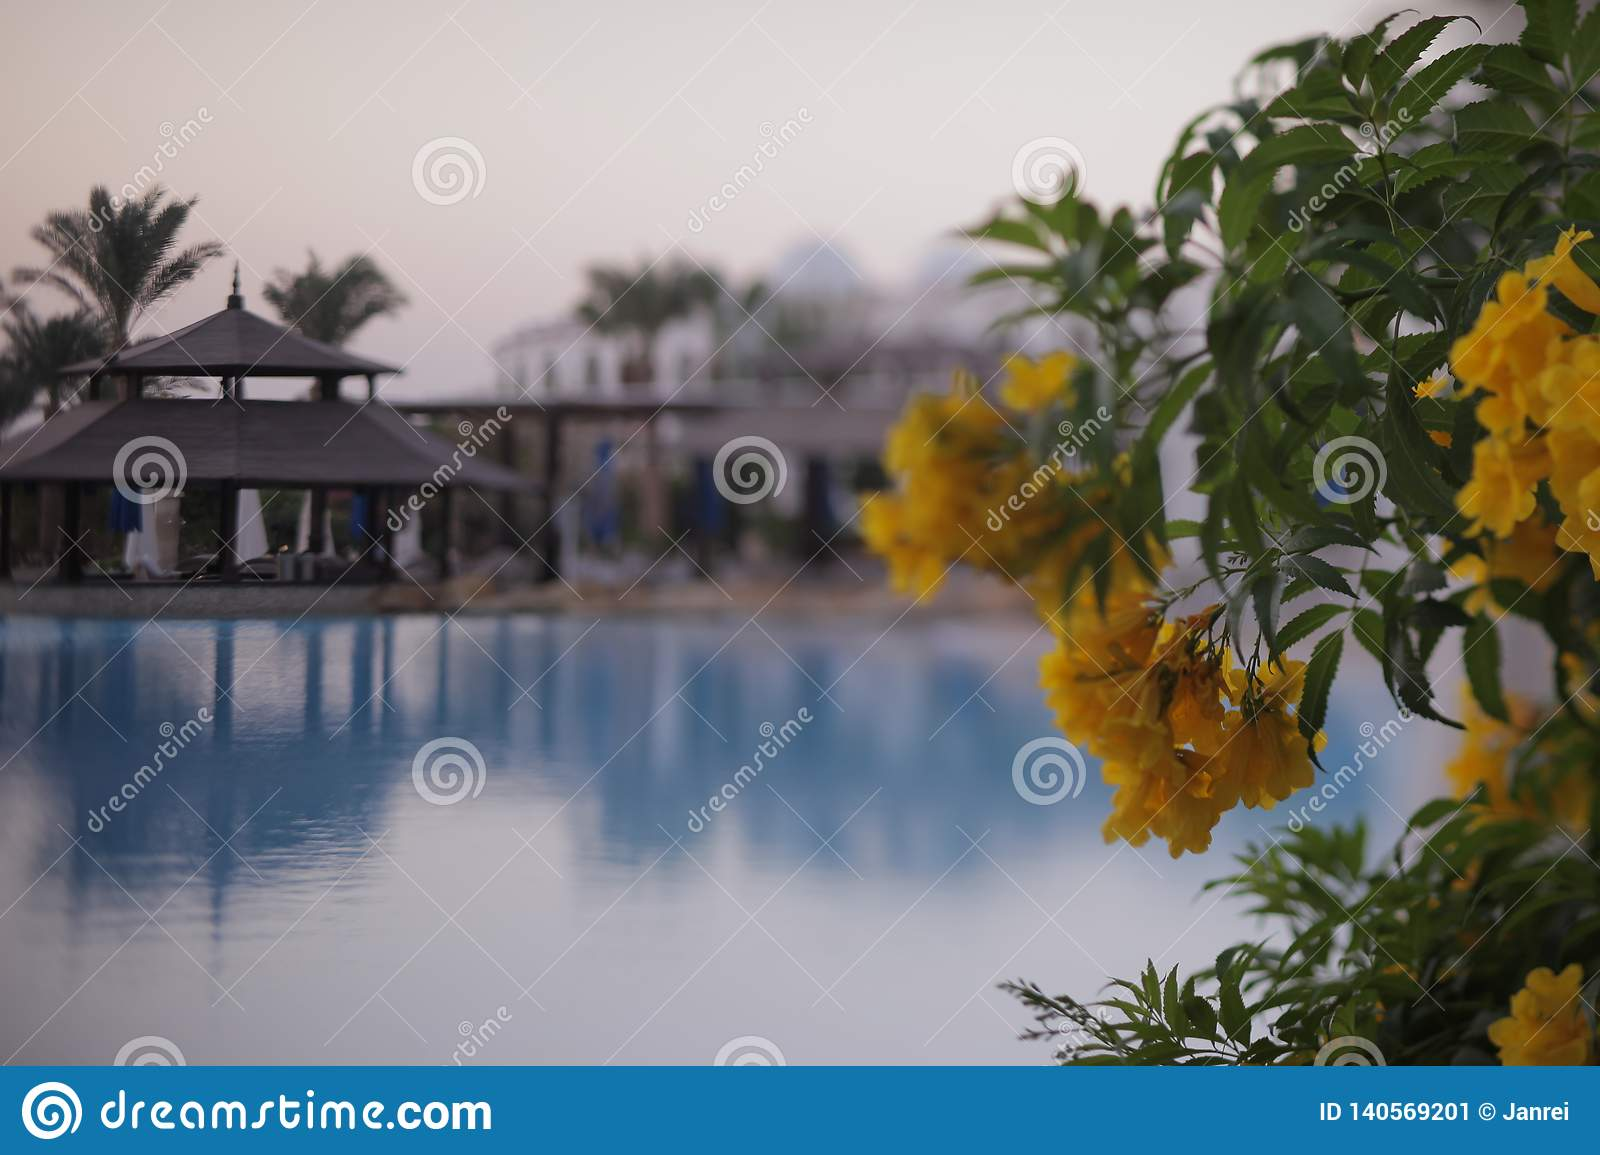 Heavenly place - relaxing by the pool with flowers on a weekend holiday in Egypt